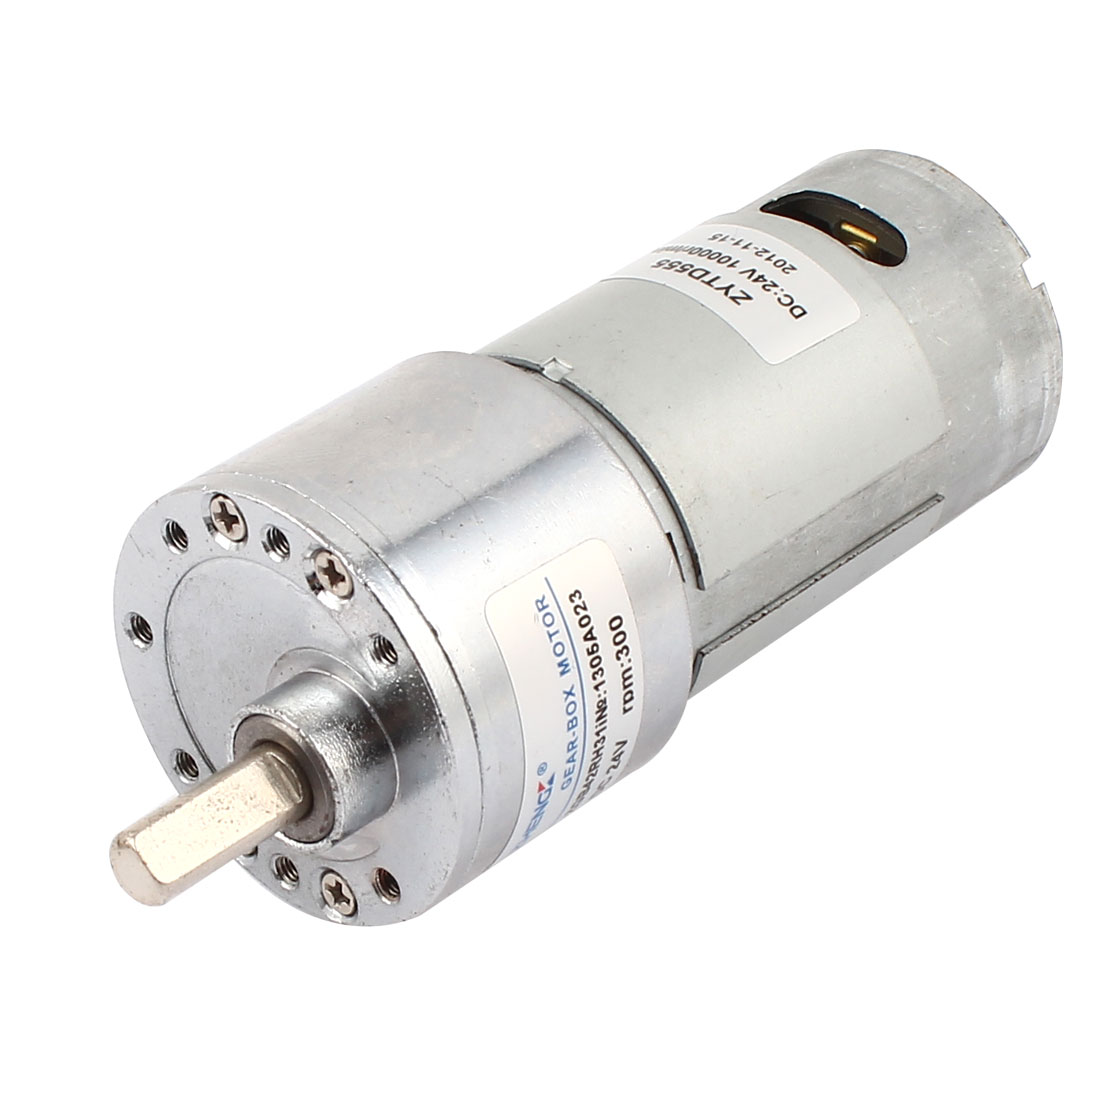 DC 24V 10000RPM Speed High Torque DC Gear Box Motor Replacement